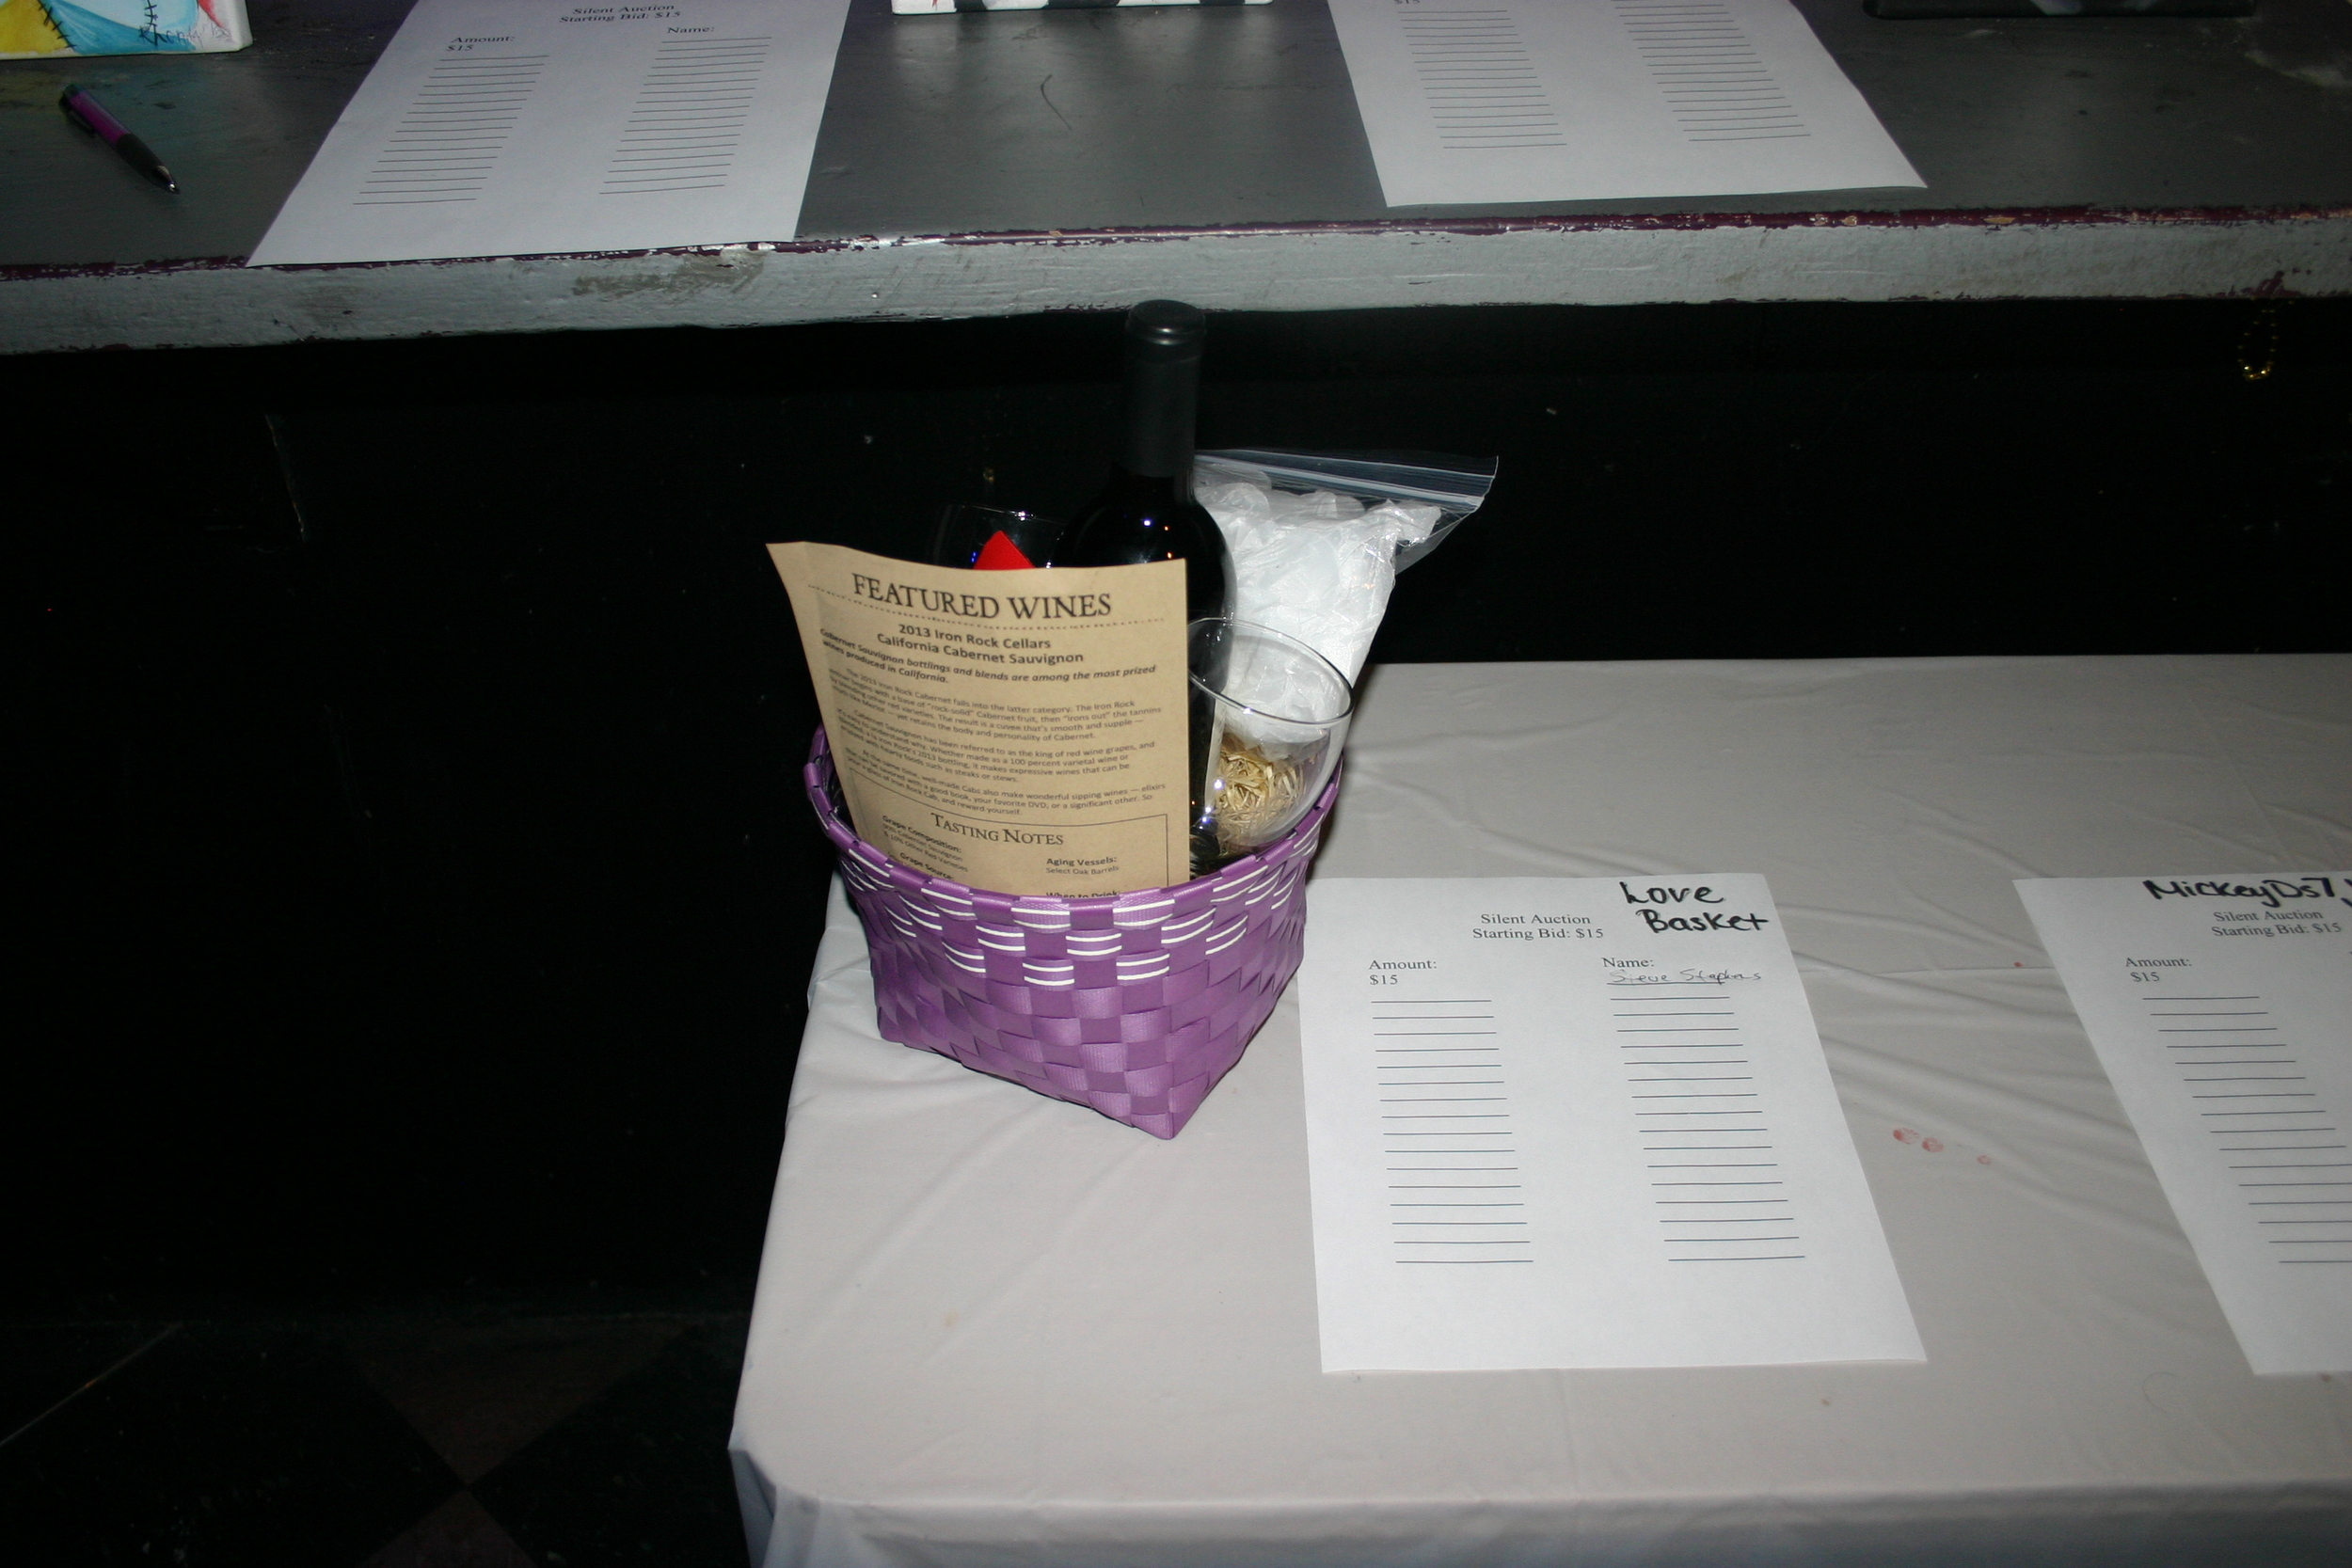 Silent Auction Items included wine and art work at the Third Annual Love Doesn't Hurt Fundraiser at Spectrum Nightclub March 27, 2015